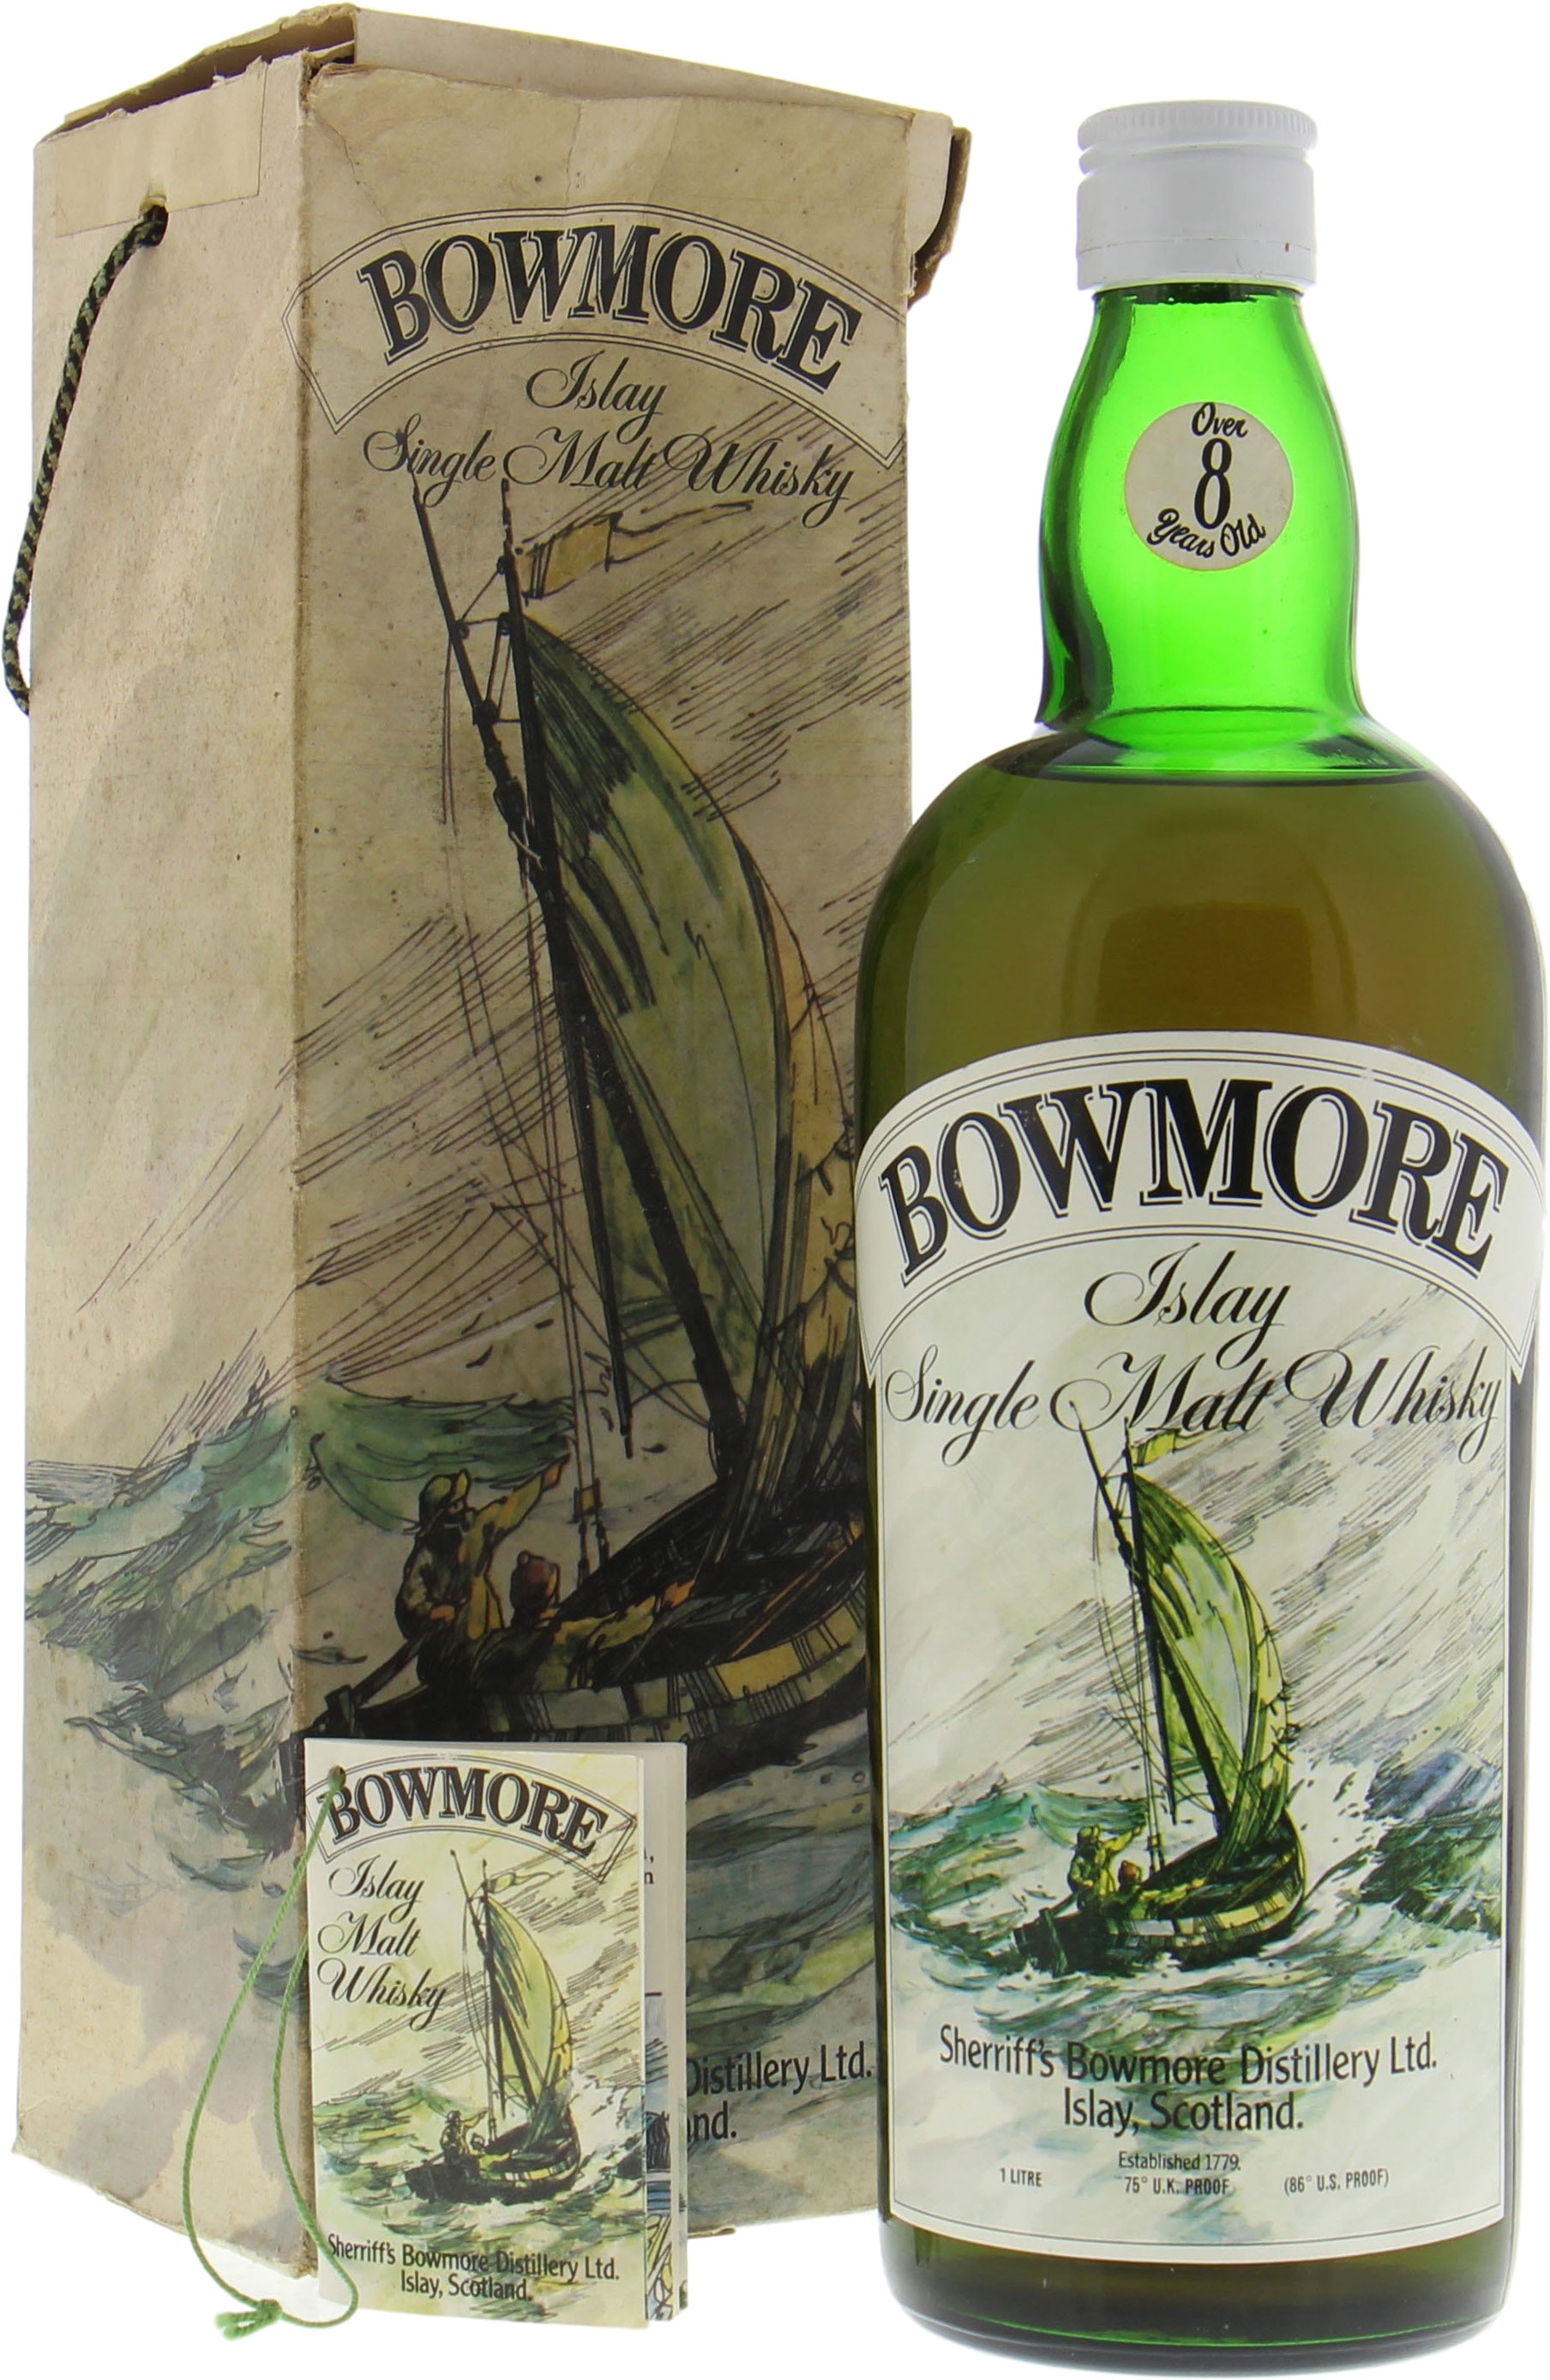 Bowmore - Sherriff's 8 Years Old 75 UK Proof 42.8% NV